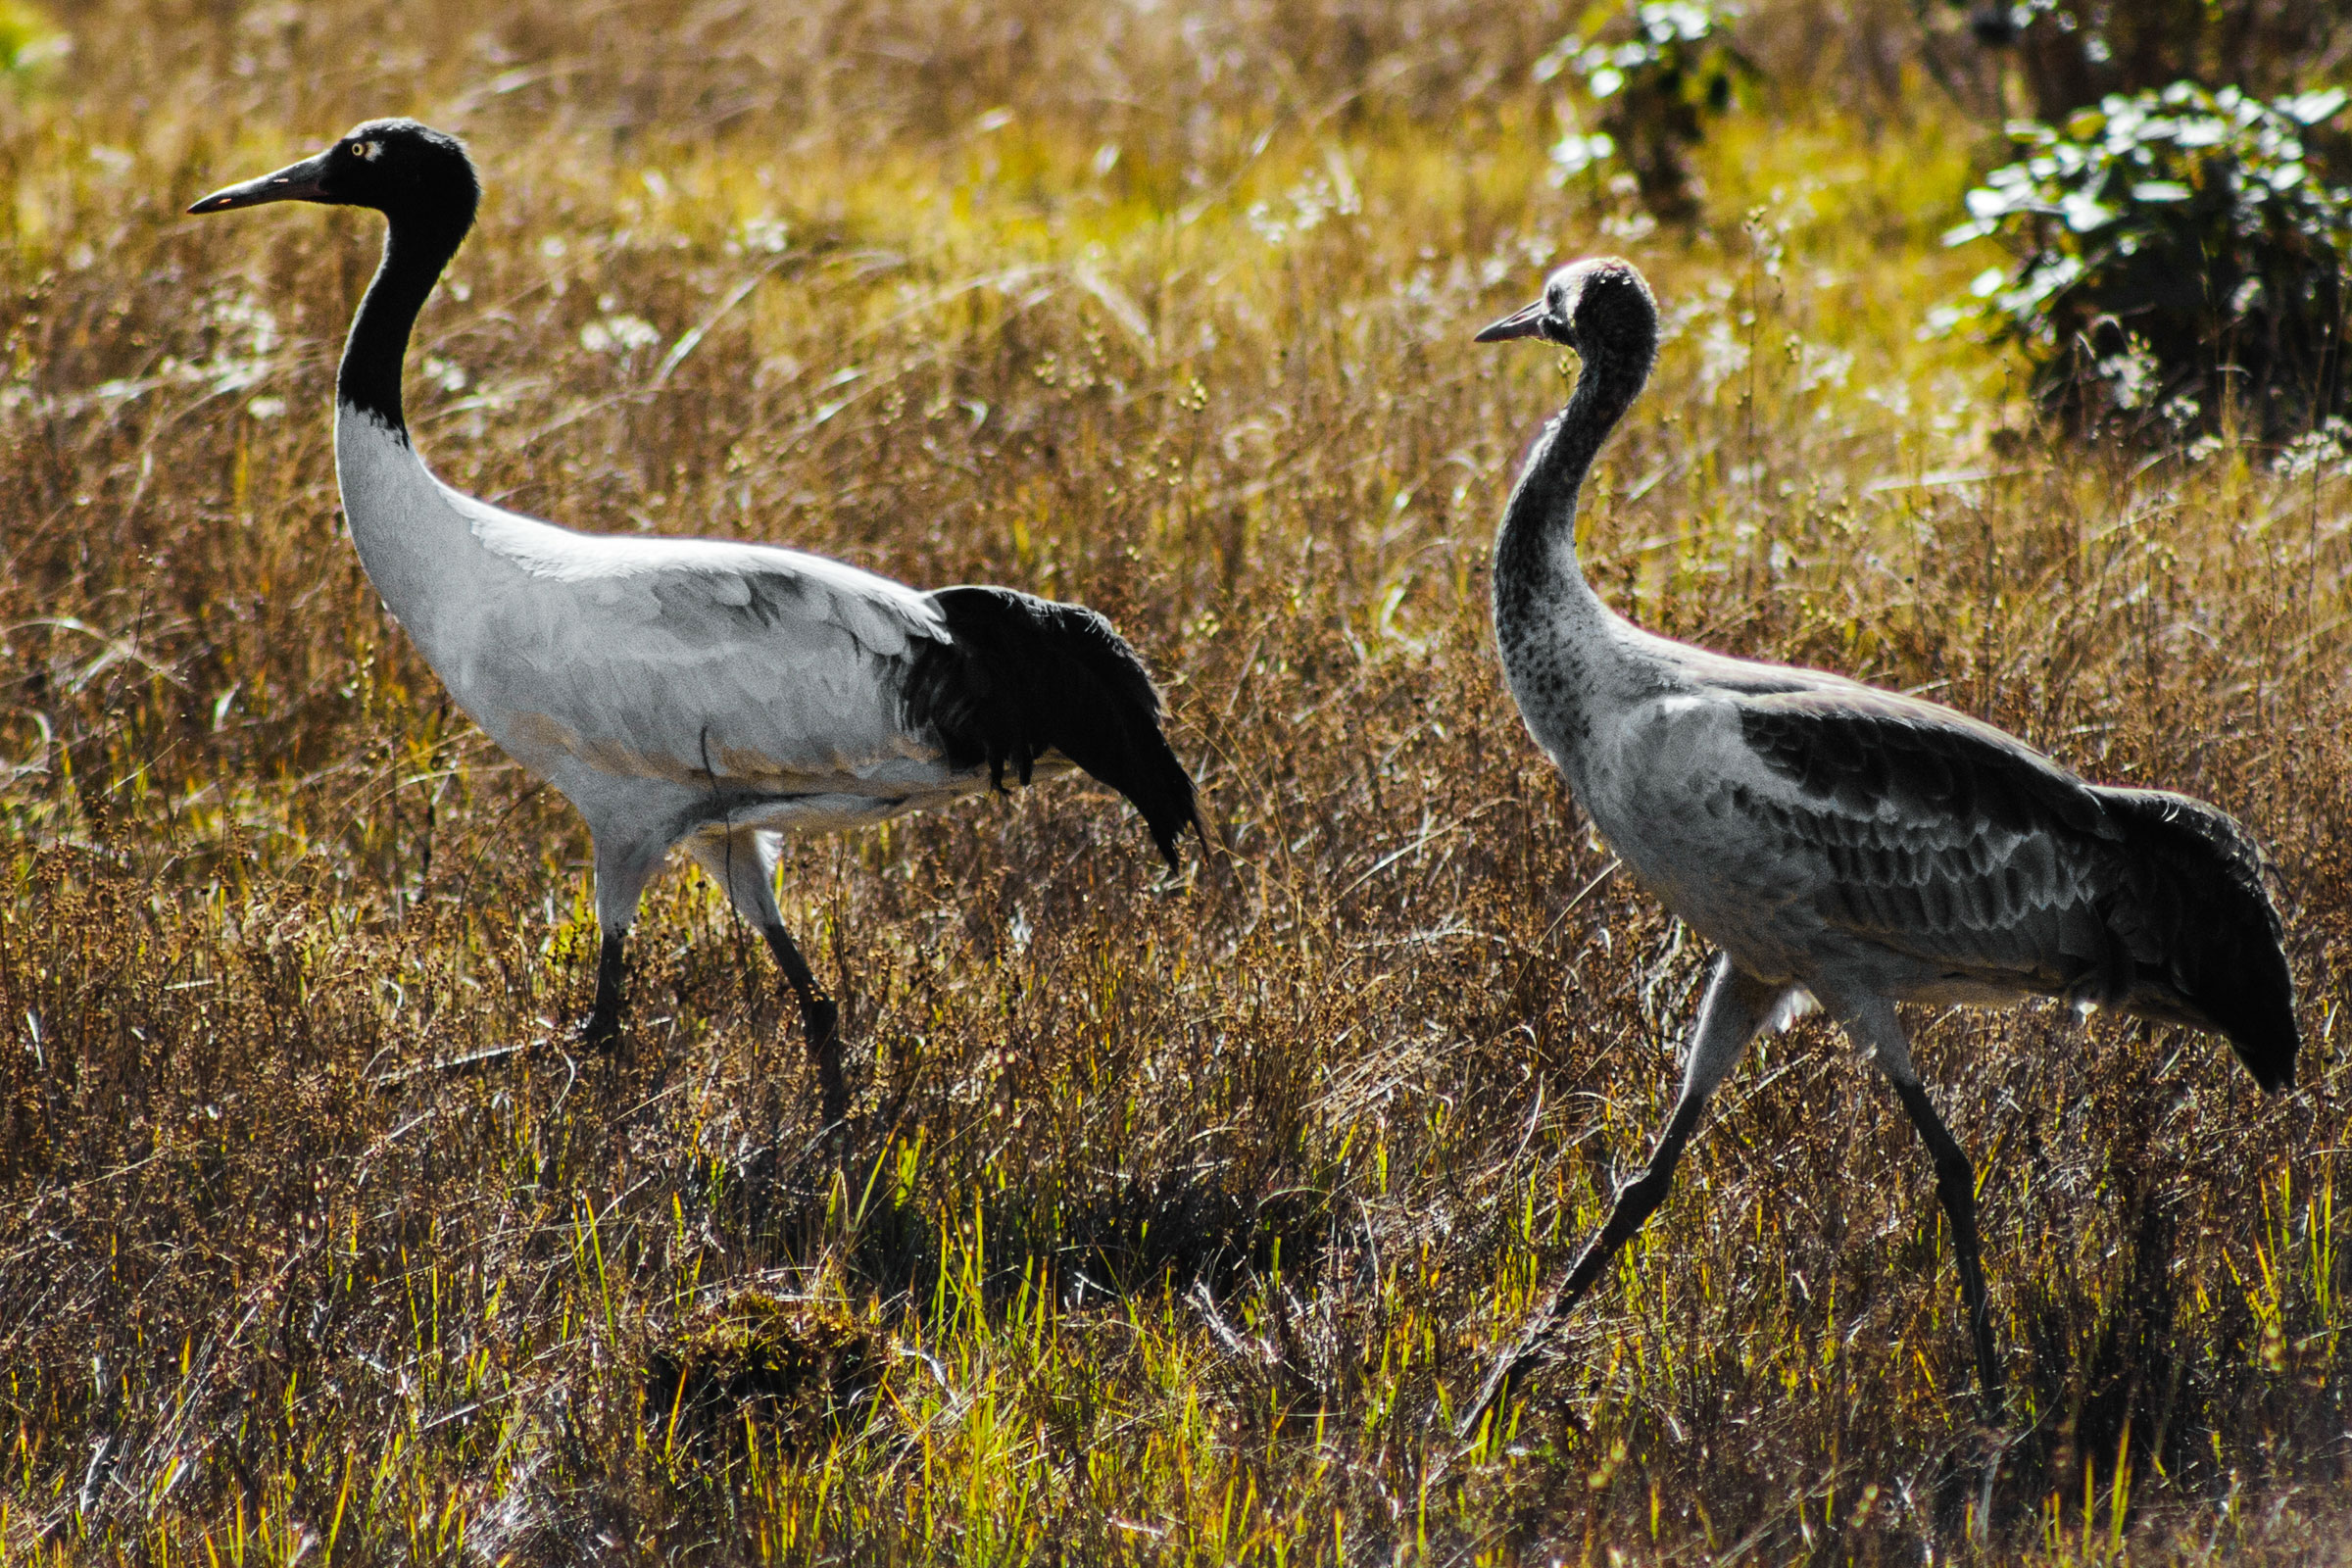 One adult and one juvenile Black-necked Crane in Phobjikha Valley. The juveniles are grayer in color. Ambika Singh